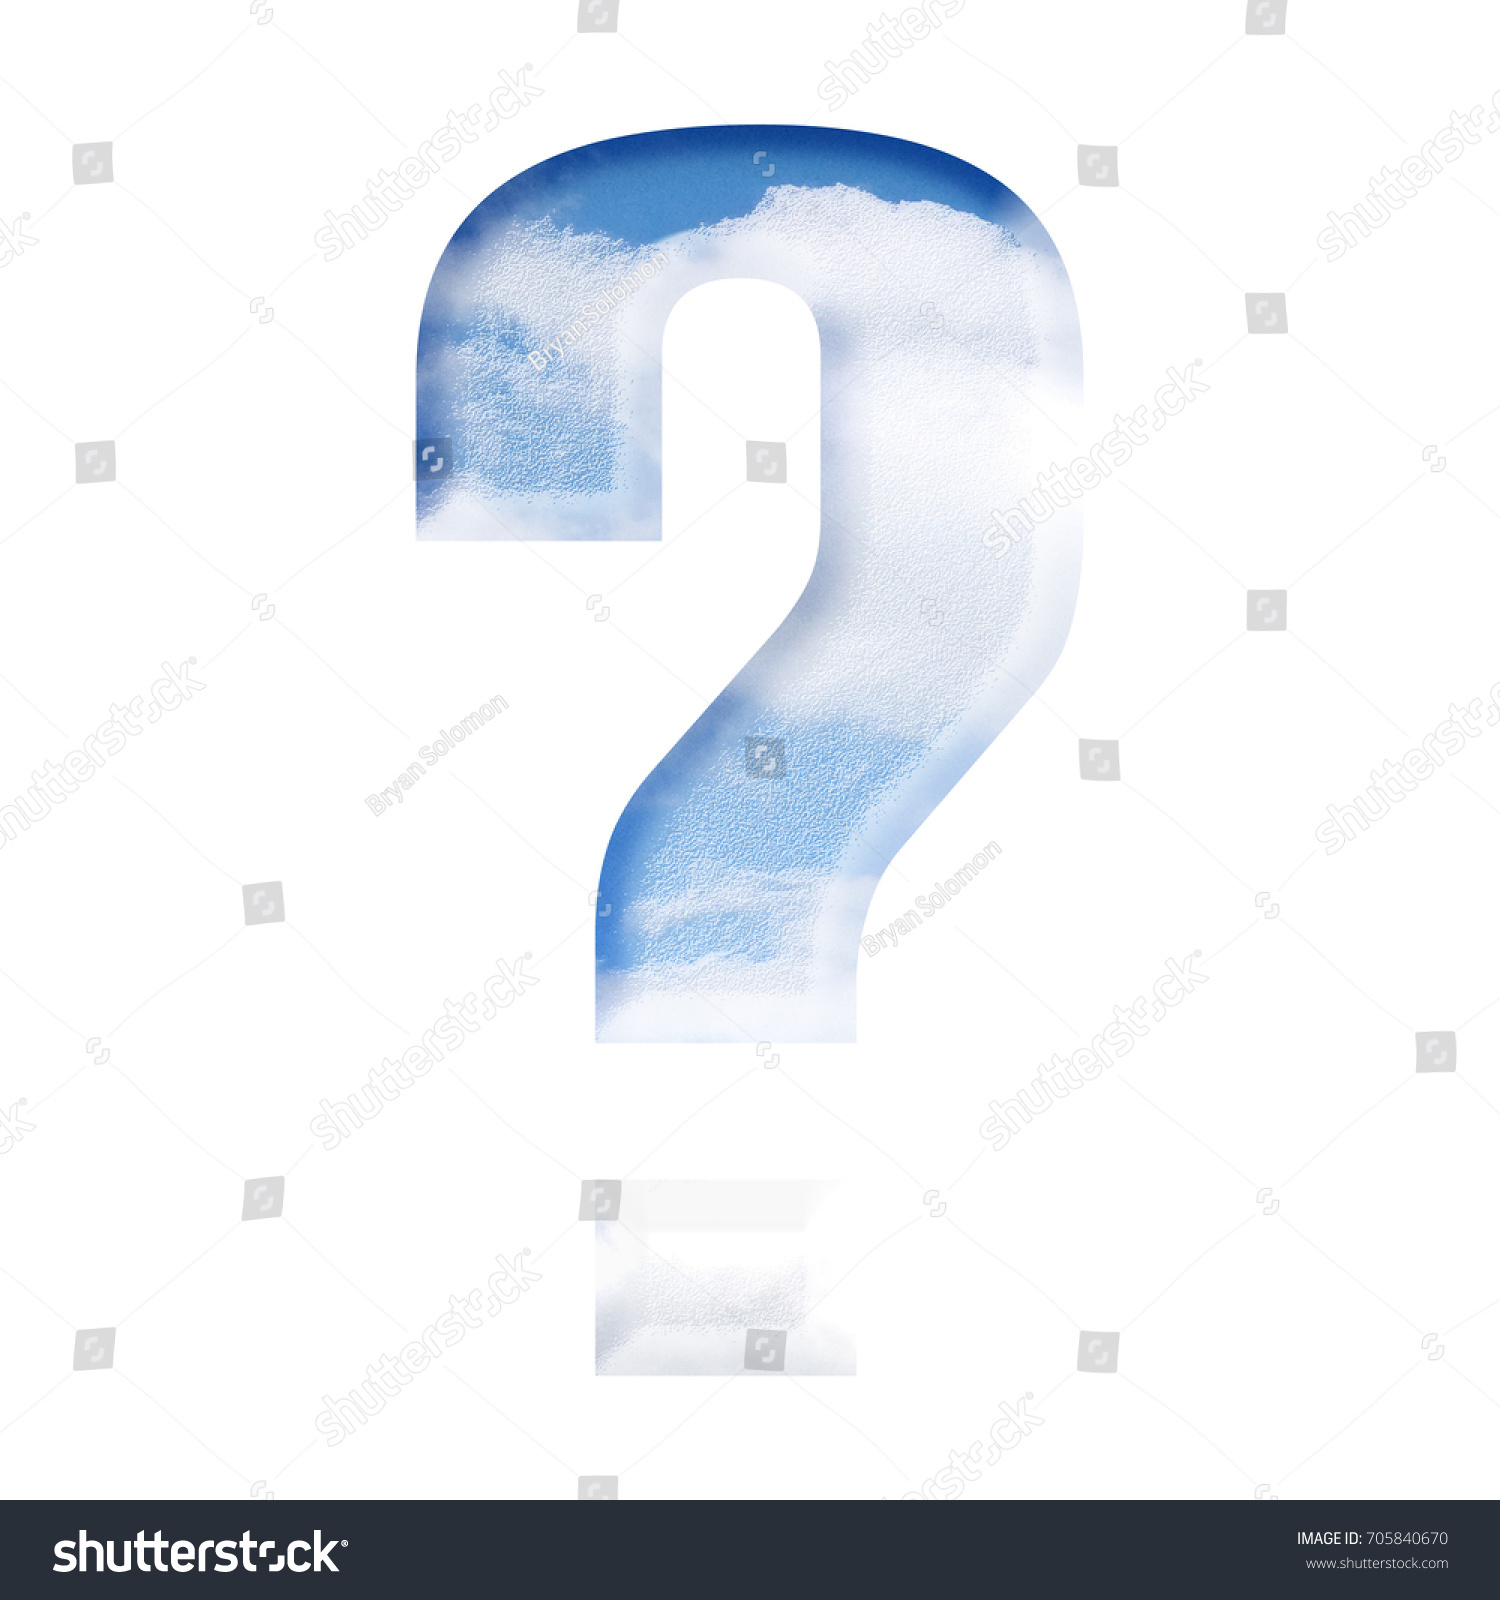 Blue sky style question mark sign stock illustration 705840670 blue sky style question mark sign symbol in a 3d illustration with a perfect summer day biocorpaavc